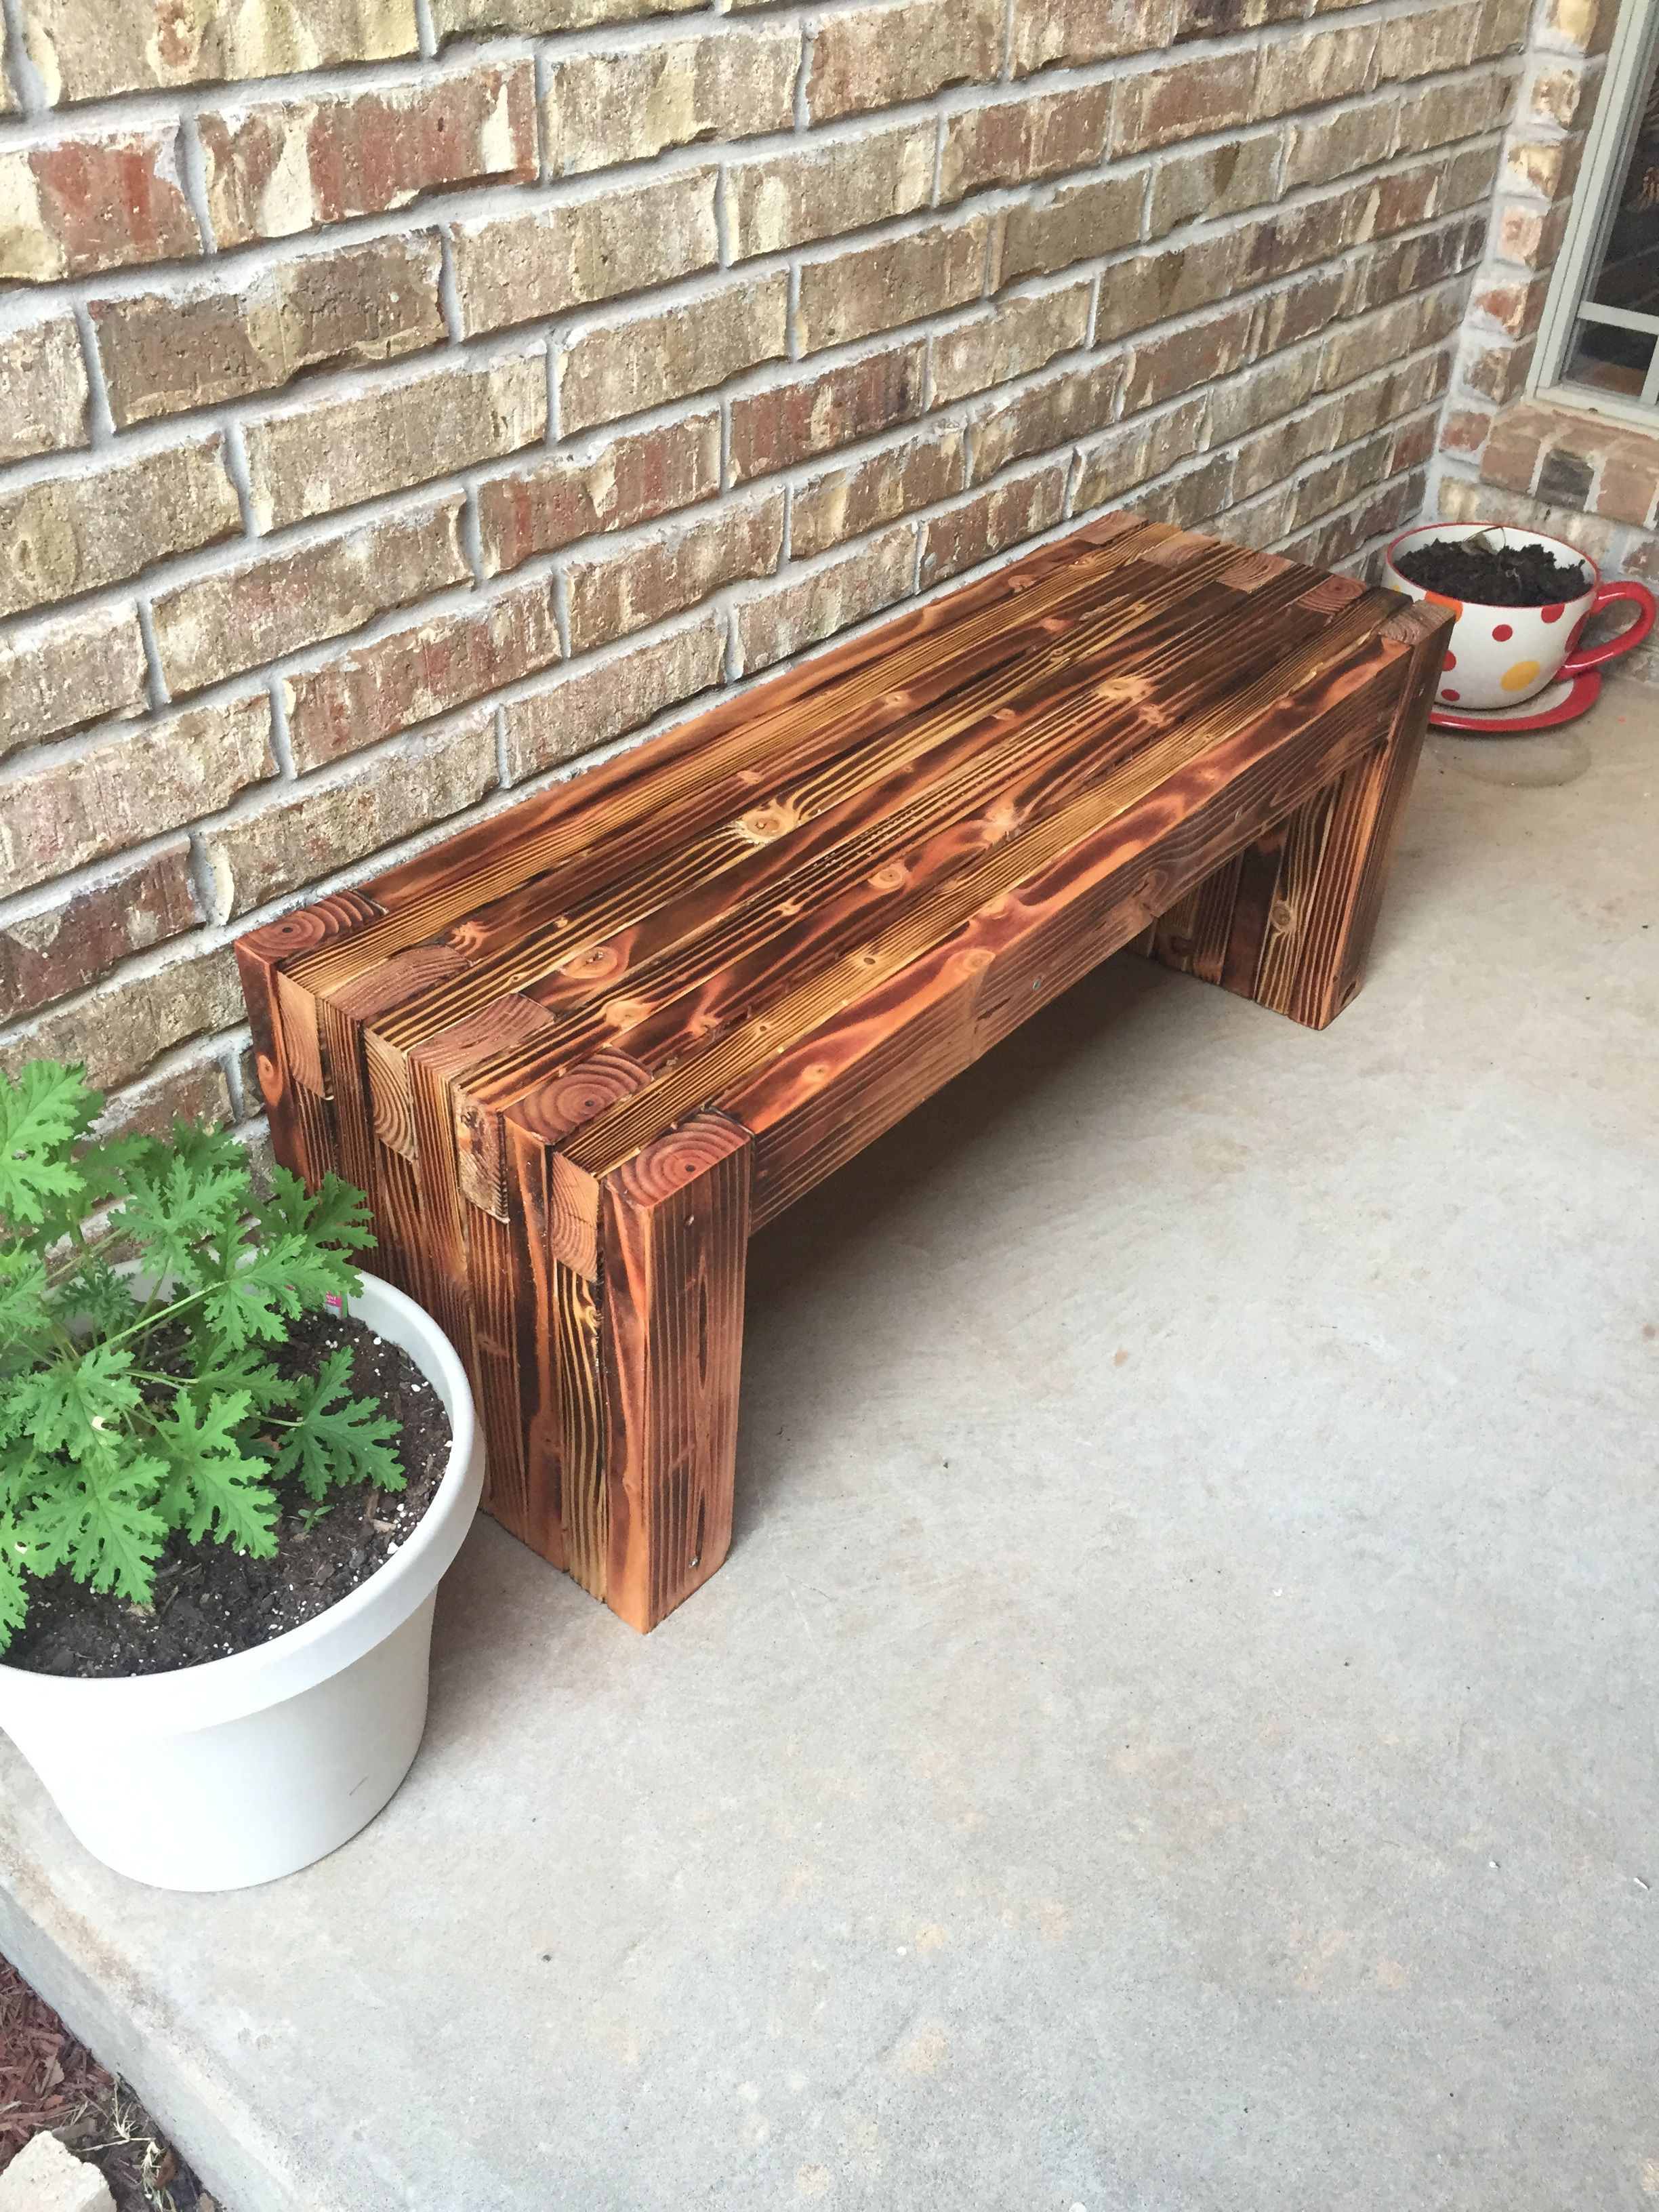 Front Porch Bench I Made For My Wife It Is Made From 2 X 4